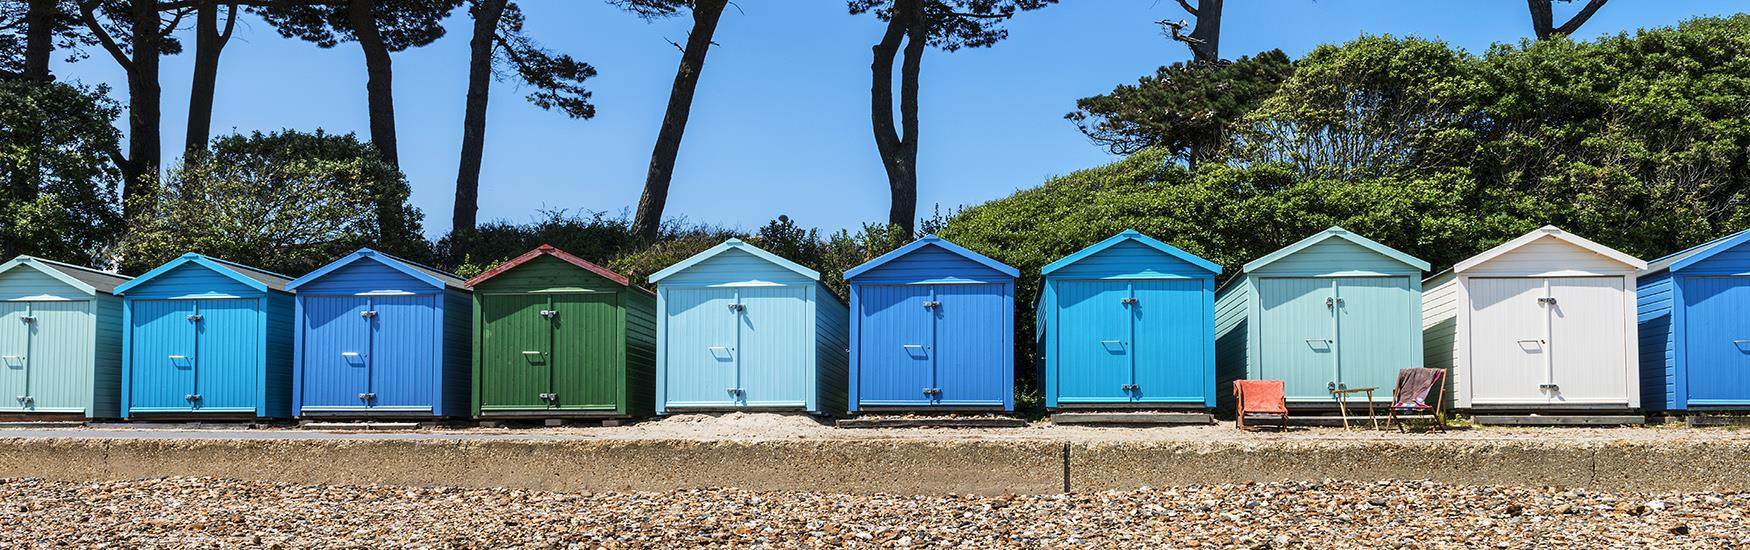 A colourful array of immaculate looking beach huts found in Christchurch